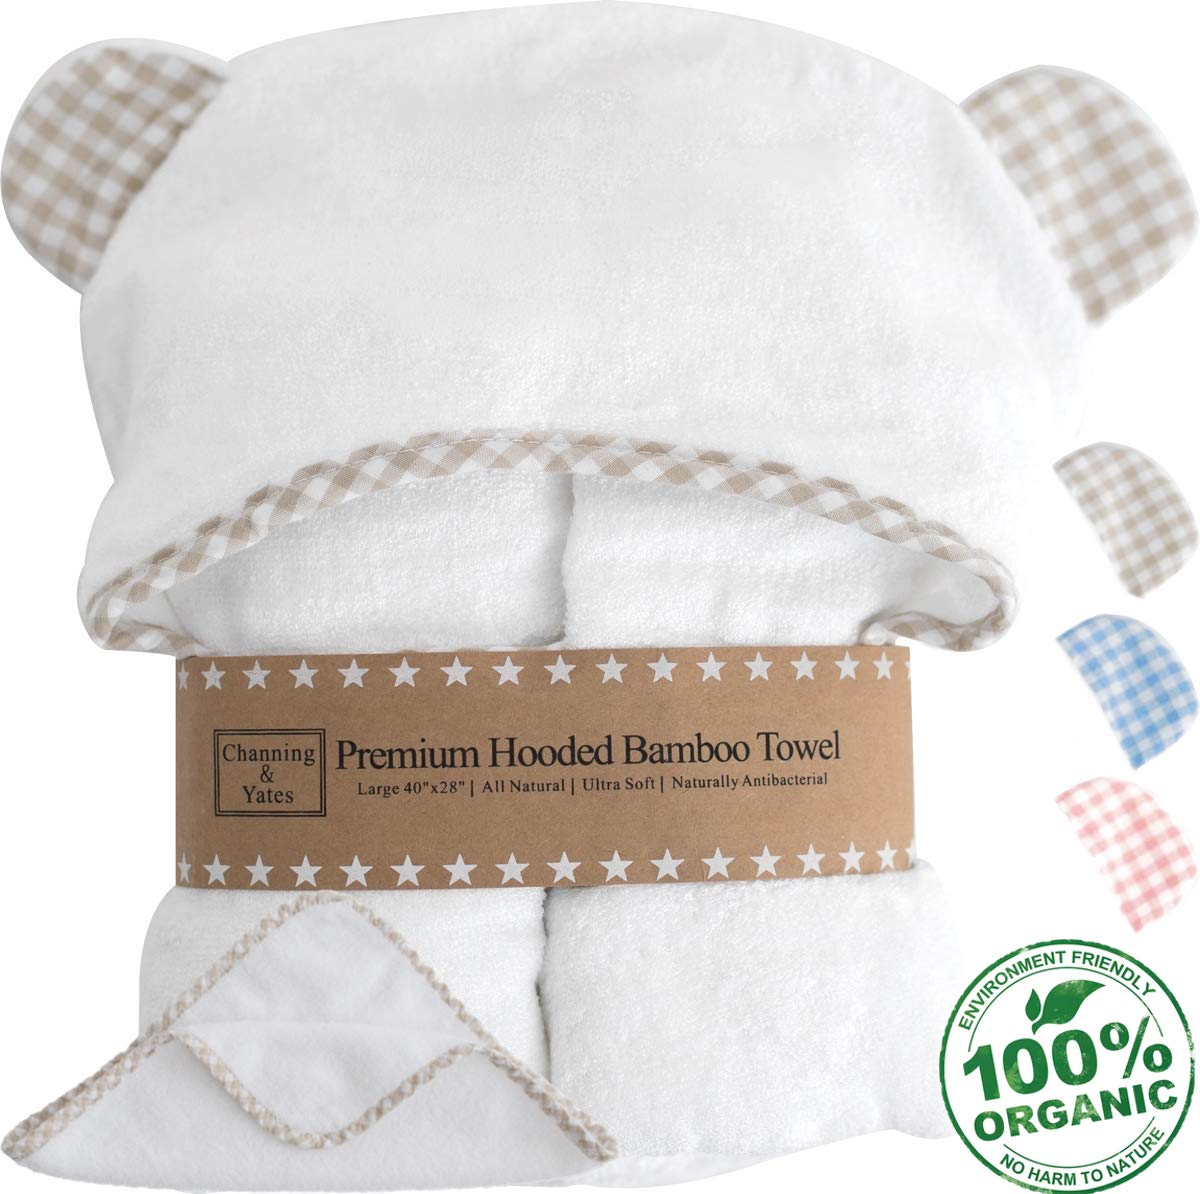 Premium Hooded Baby Towel and Washcloth Gift Set - Largest Organic Baby Towels and Washcloths - Bamboo Baby Towel with Hood - Hypoallergenic Toddler Towel - Baby Shower Gift for Boys or Girls (Beige)